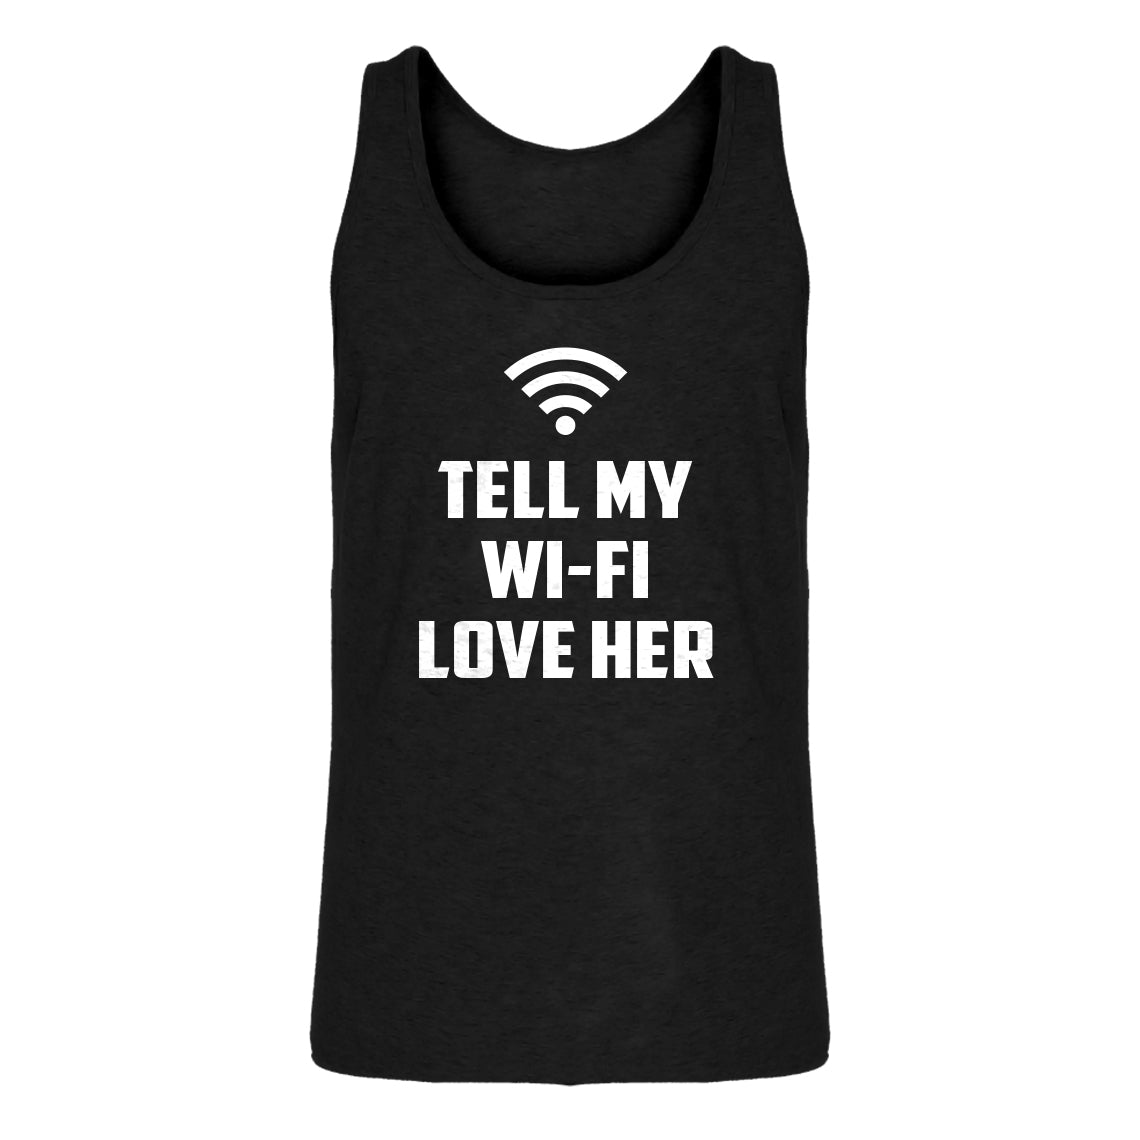 Mens Tell My WI-FI Love Her Jersey Tank Top